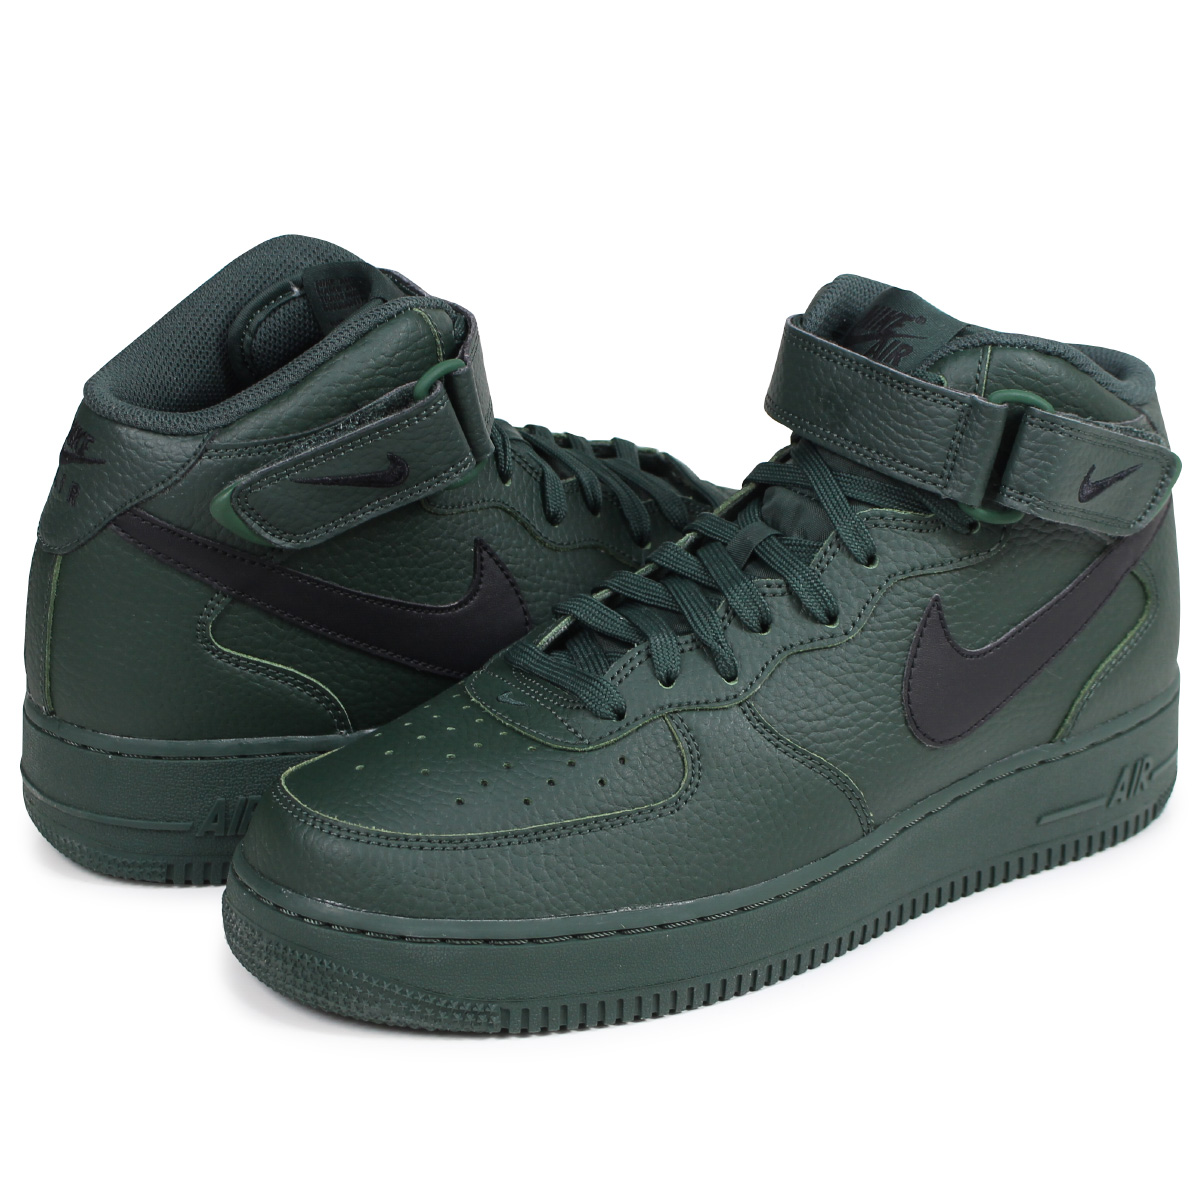 e5642899462 Whats up Sports  NIKE AIR FORCE 1 Nike air force 1 MID 07 sneakers ...